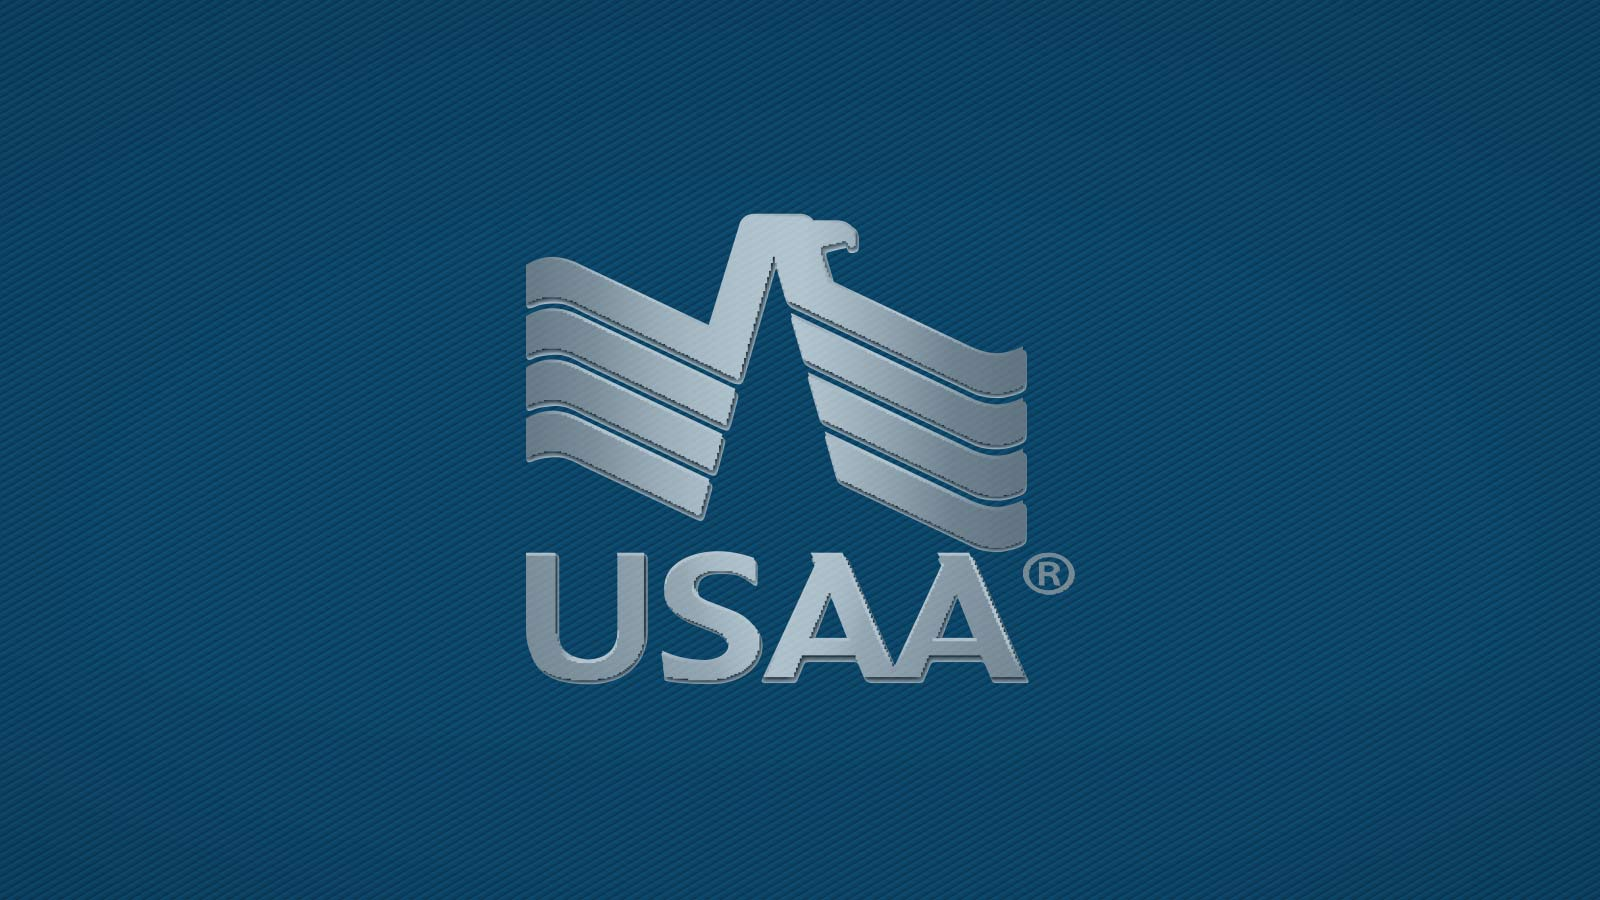 Working at USAA